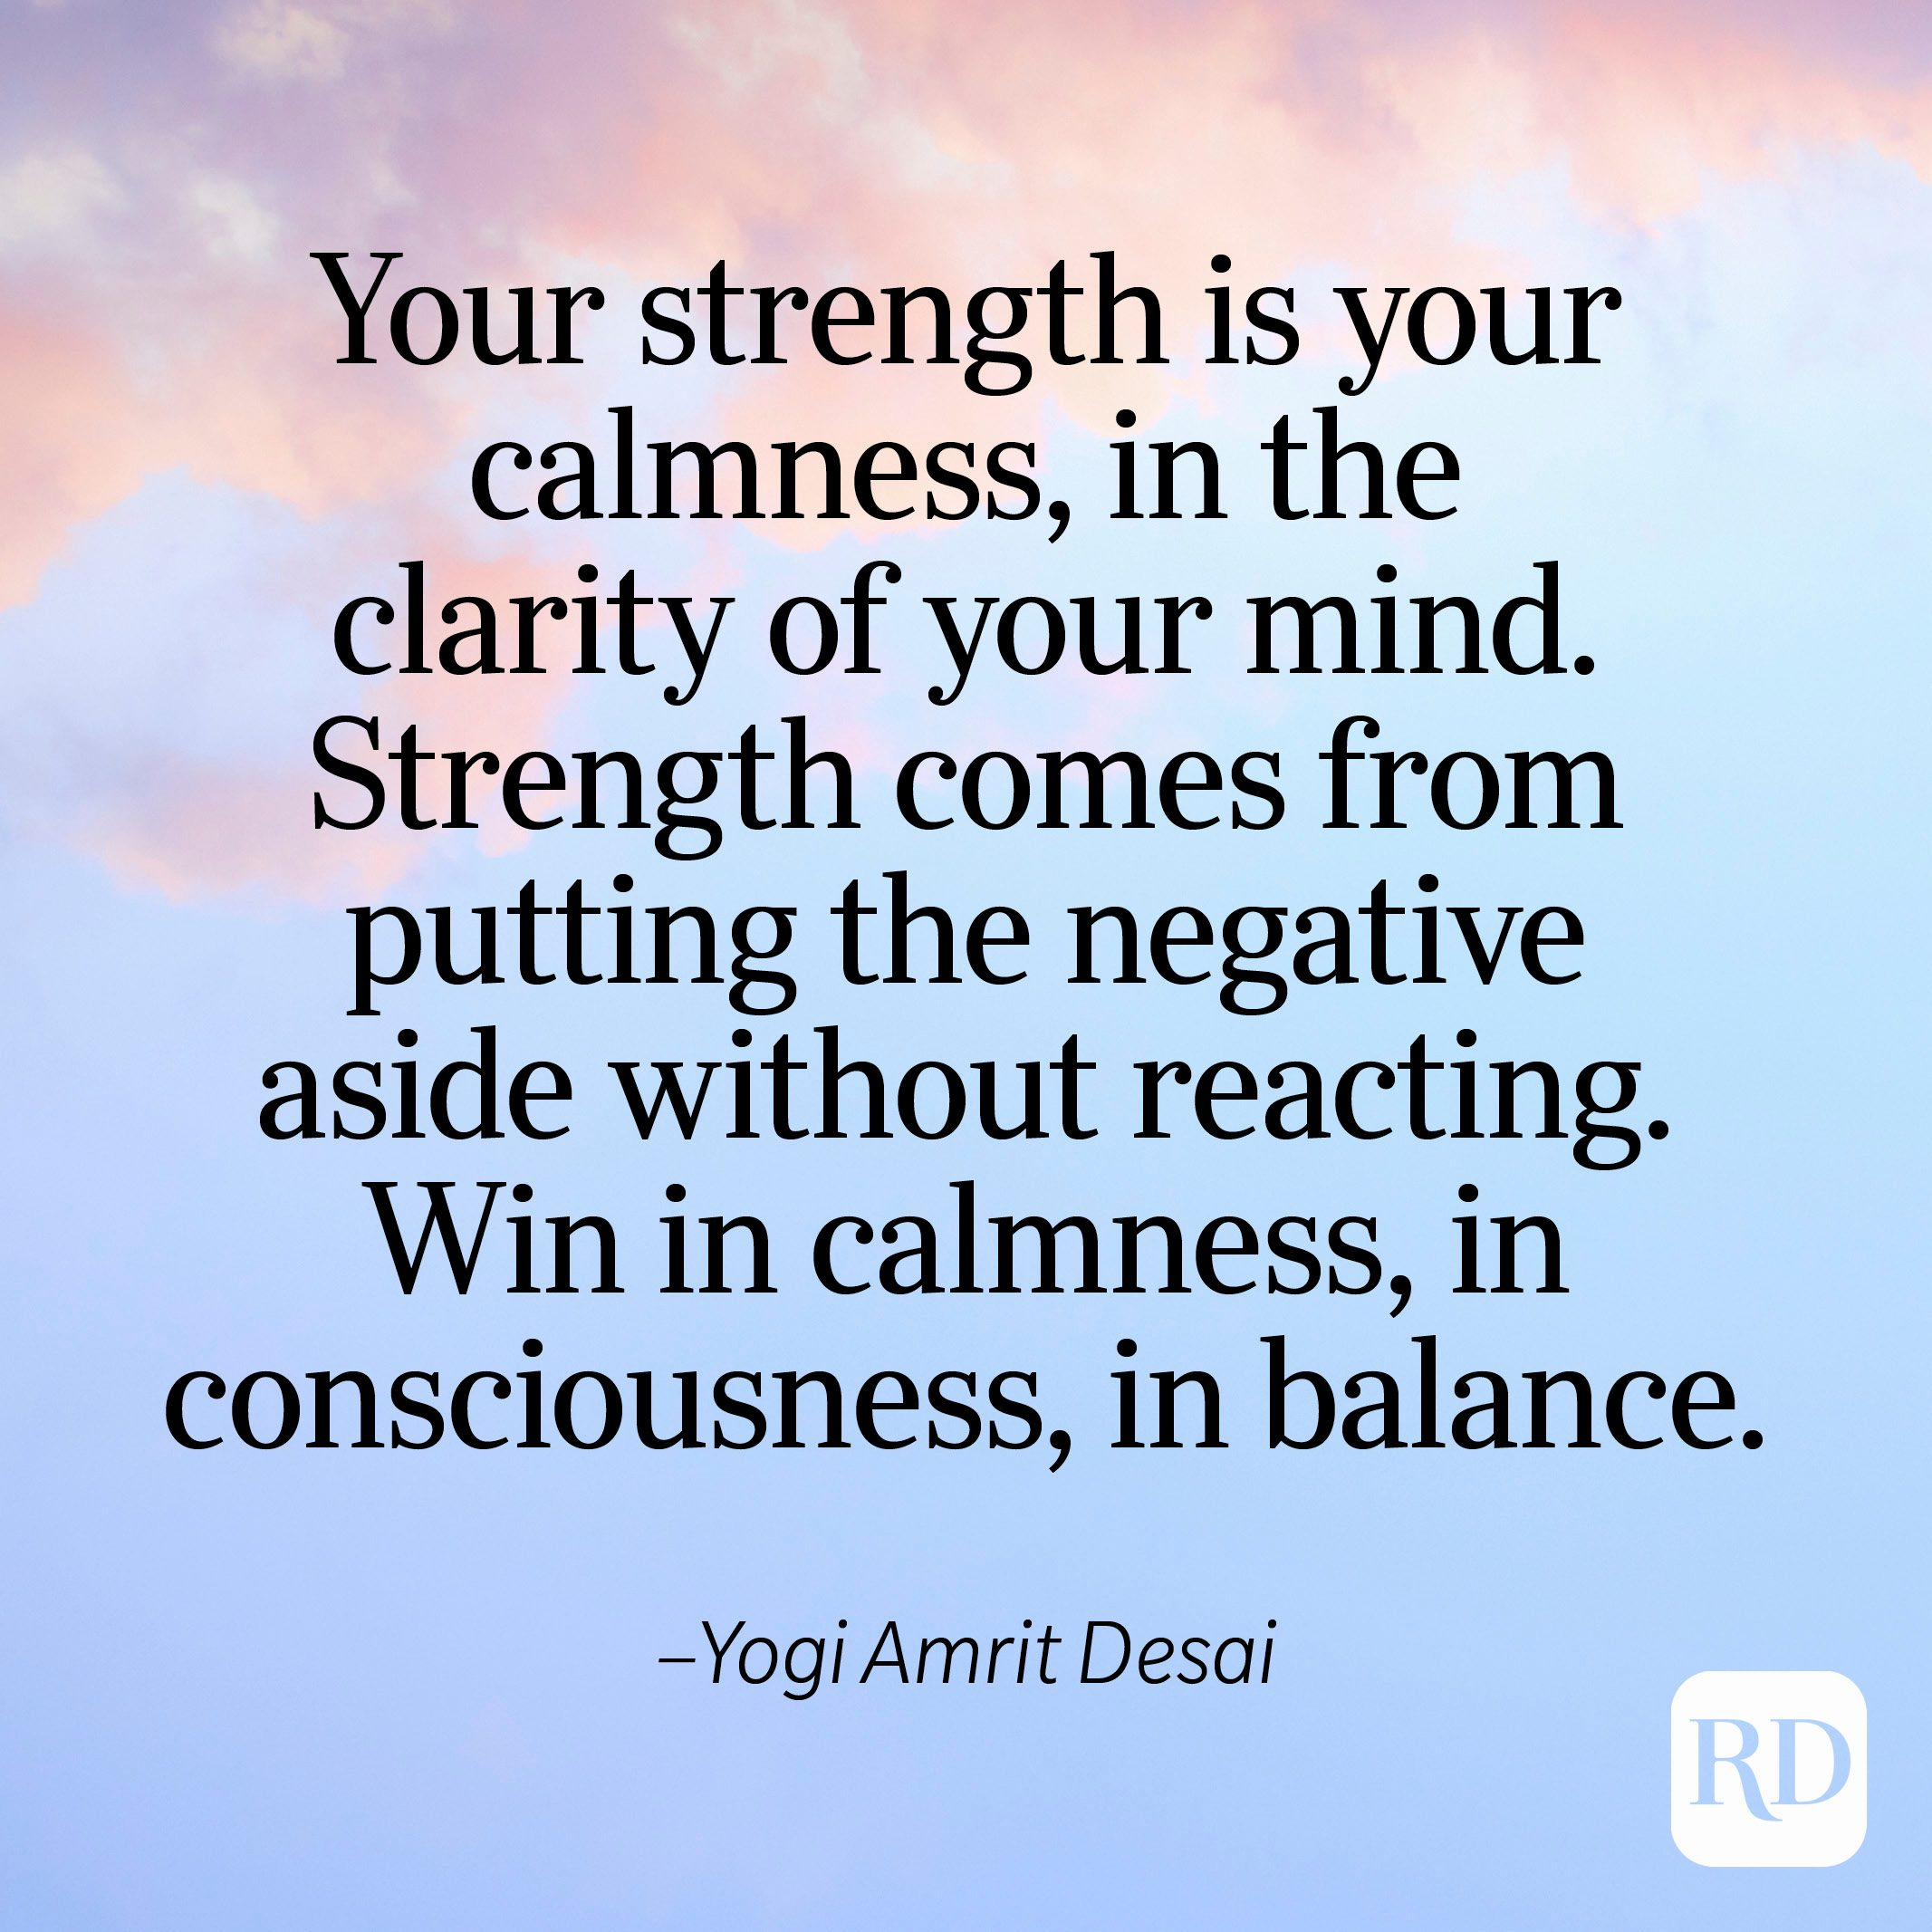 """""""Your strength is your calmness, in the clarity of your mind. Strength comes from putting the negative aside without reacting. Win in calmness, in consciousness, in balance."""" —Yogi Amrit Desai"""